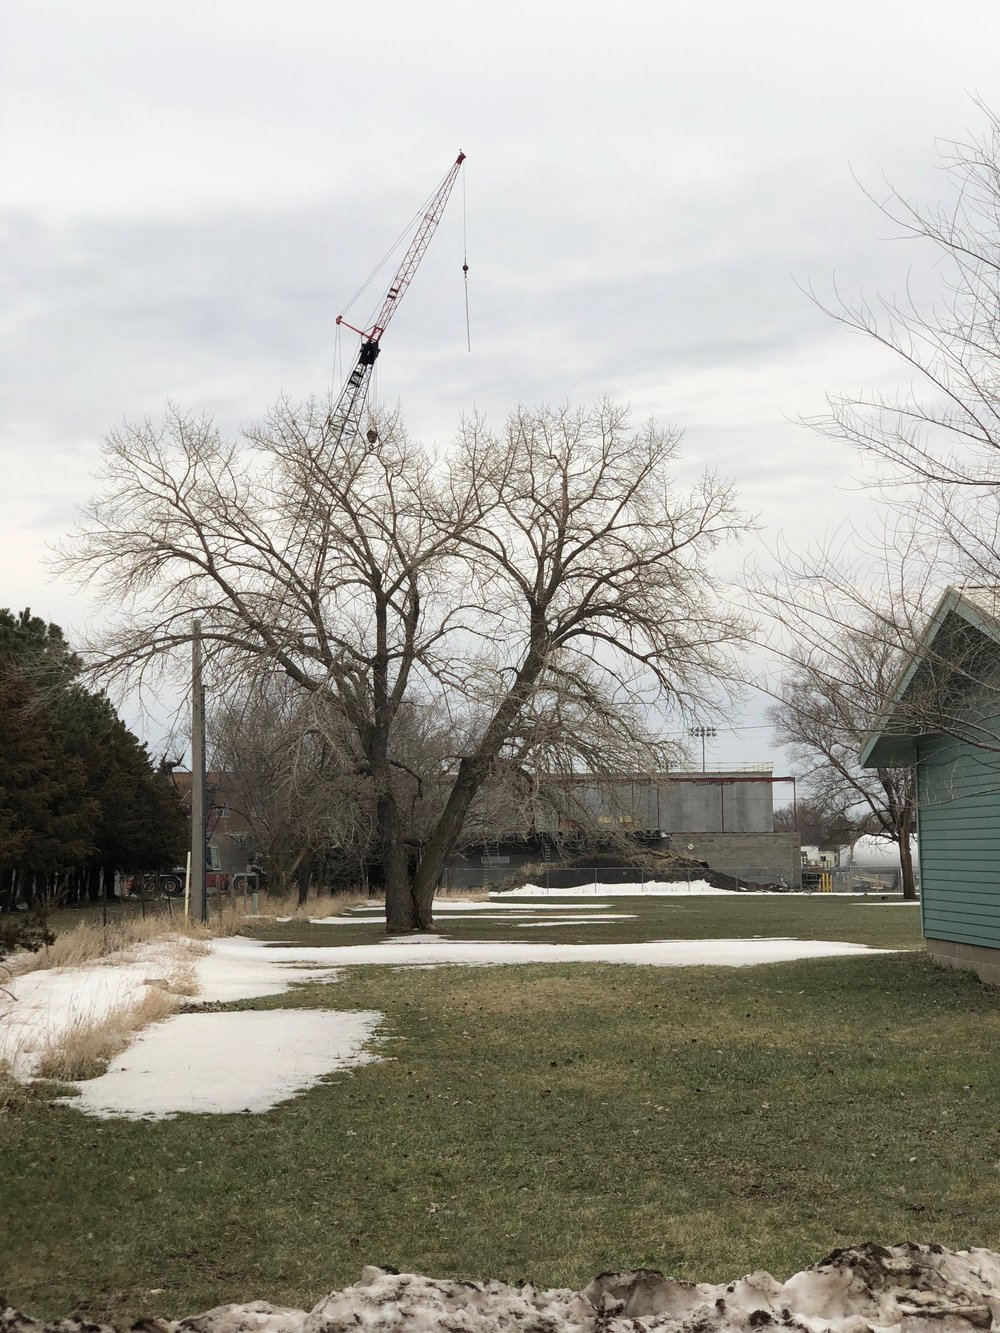 Construction at the Lake Andes school campus in April 2018.